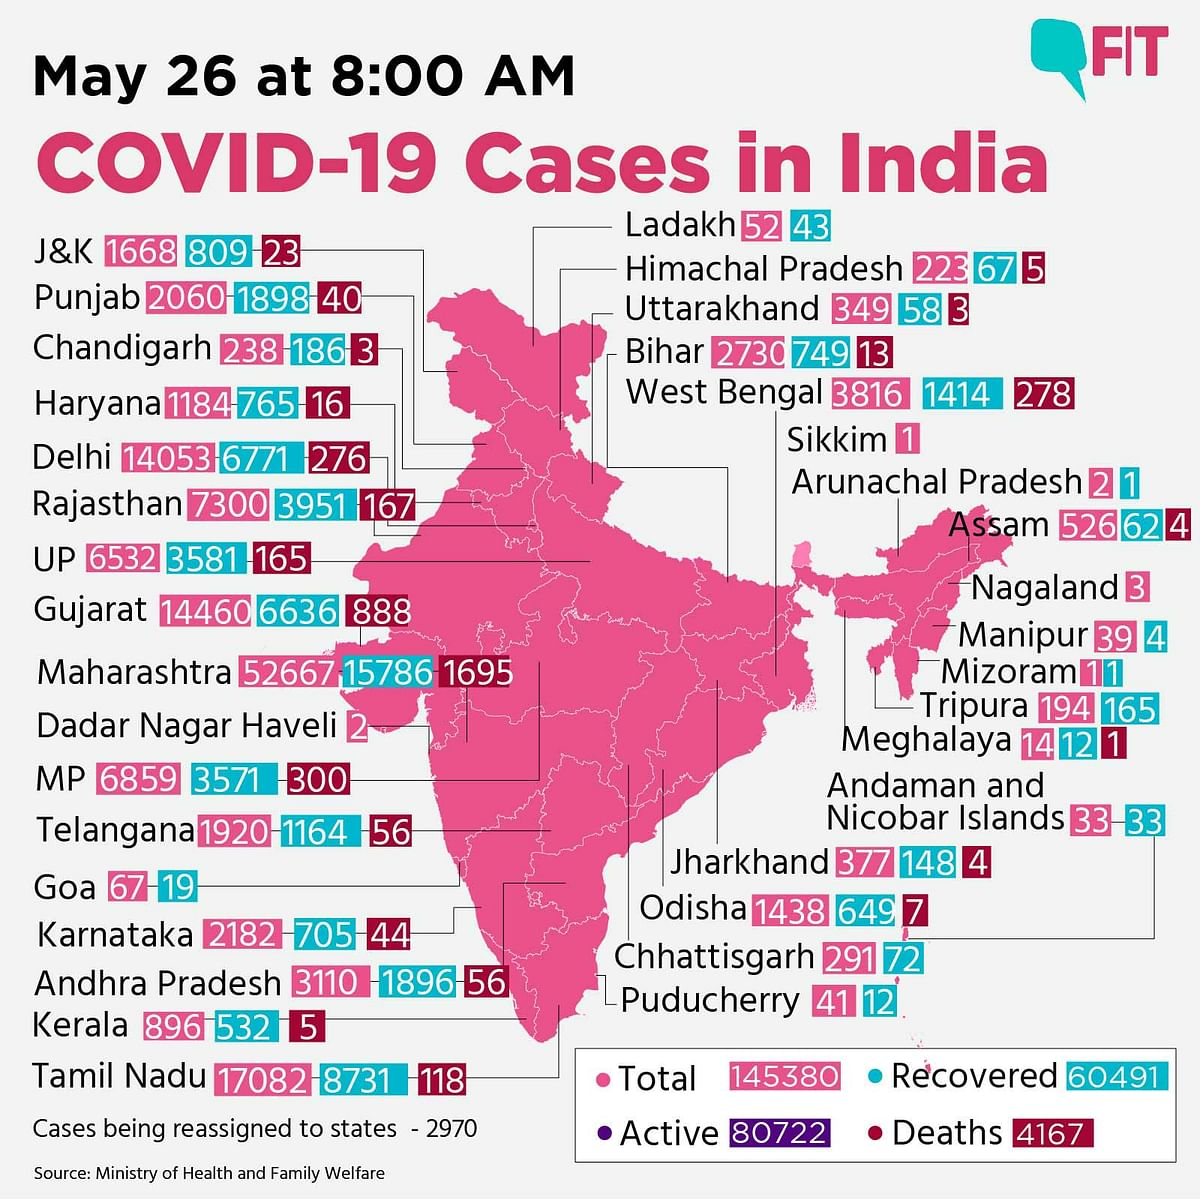 COVID-19 India Updates: 80722 Active Cases; 4167 Deaths